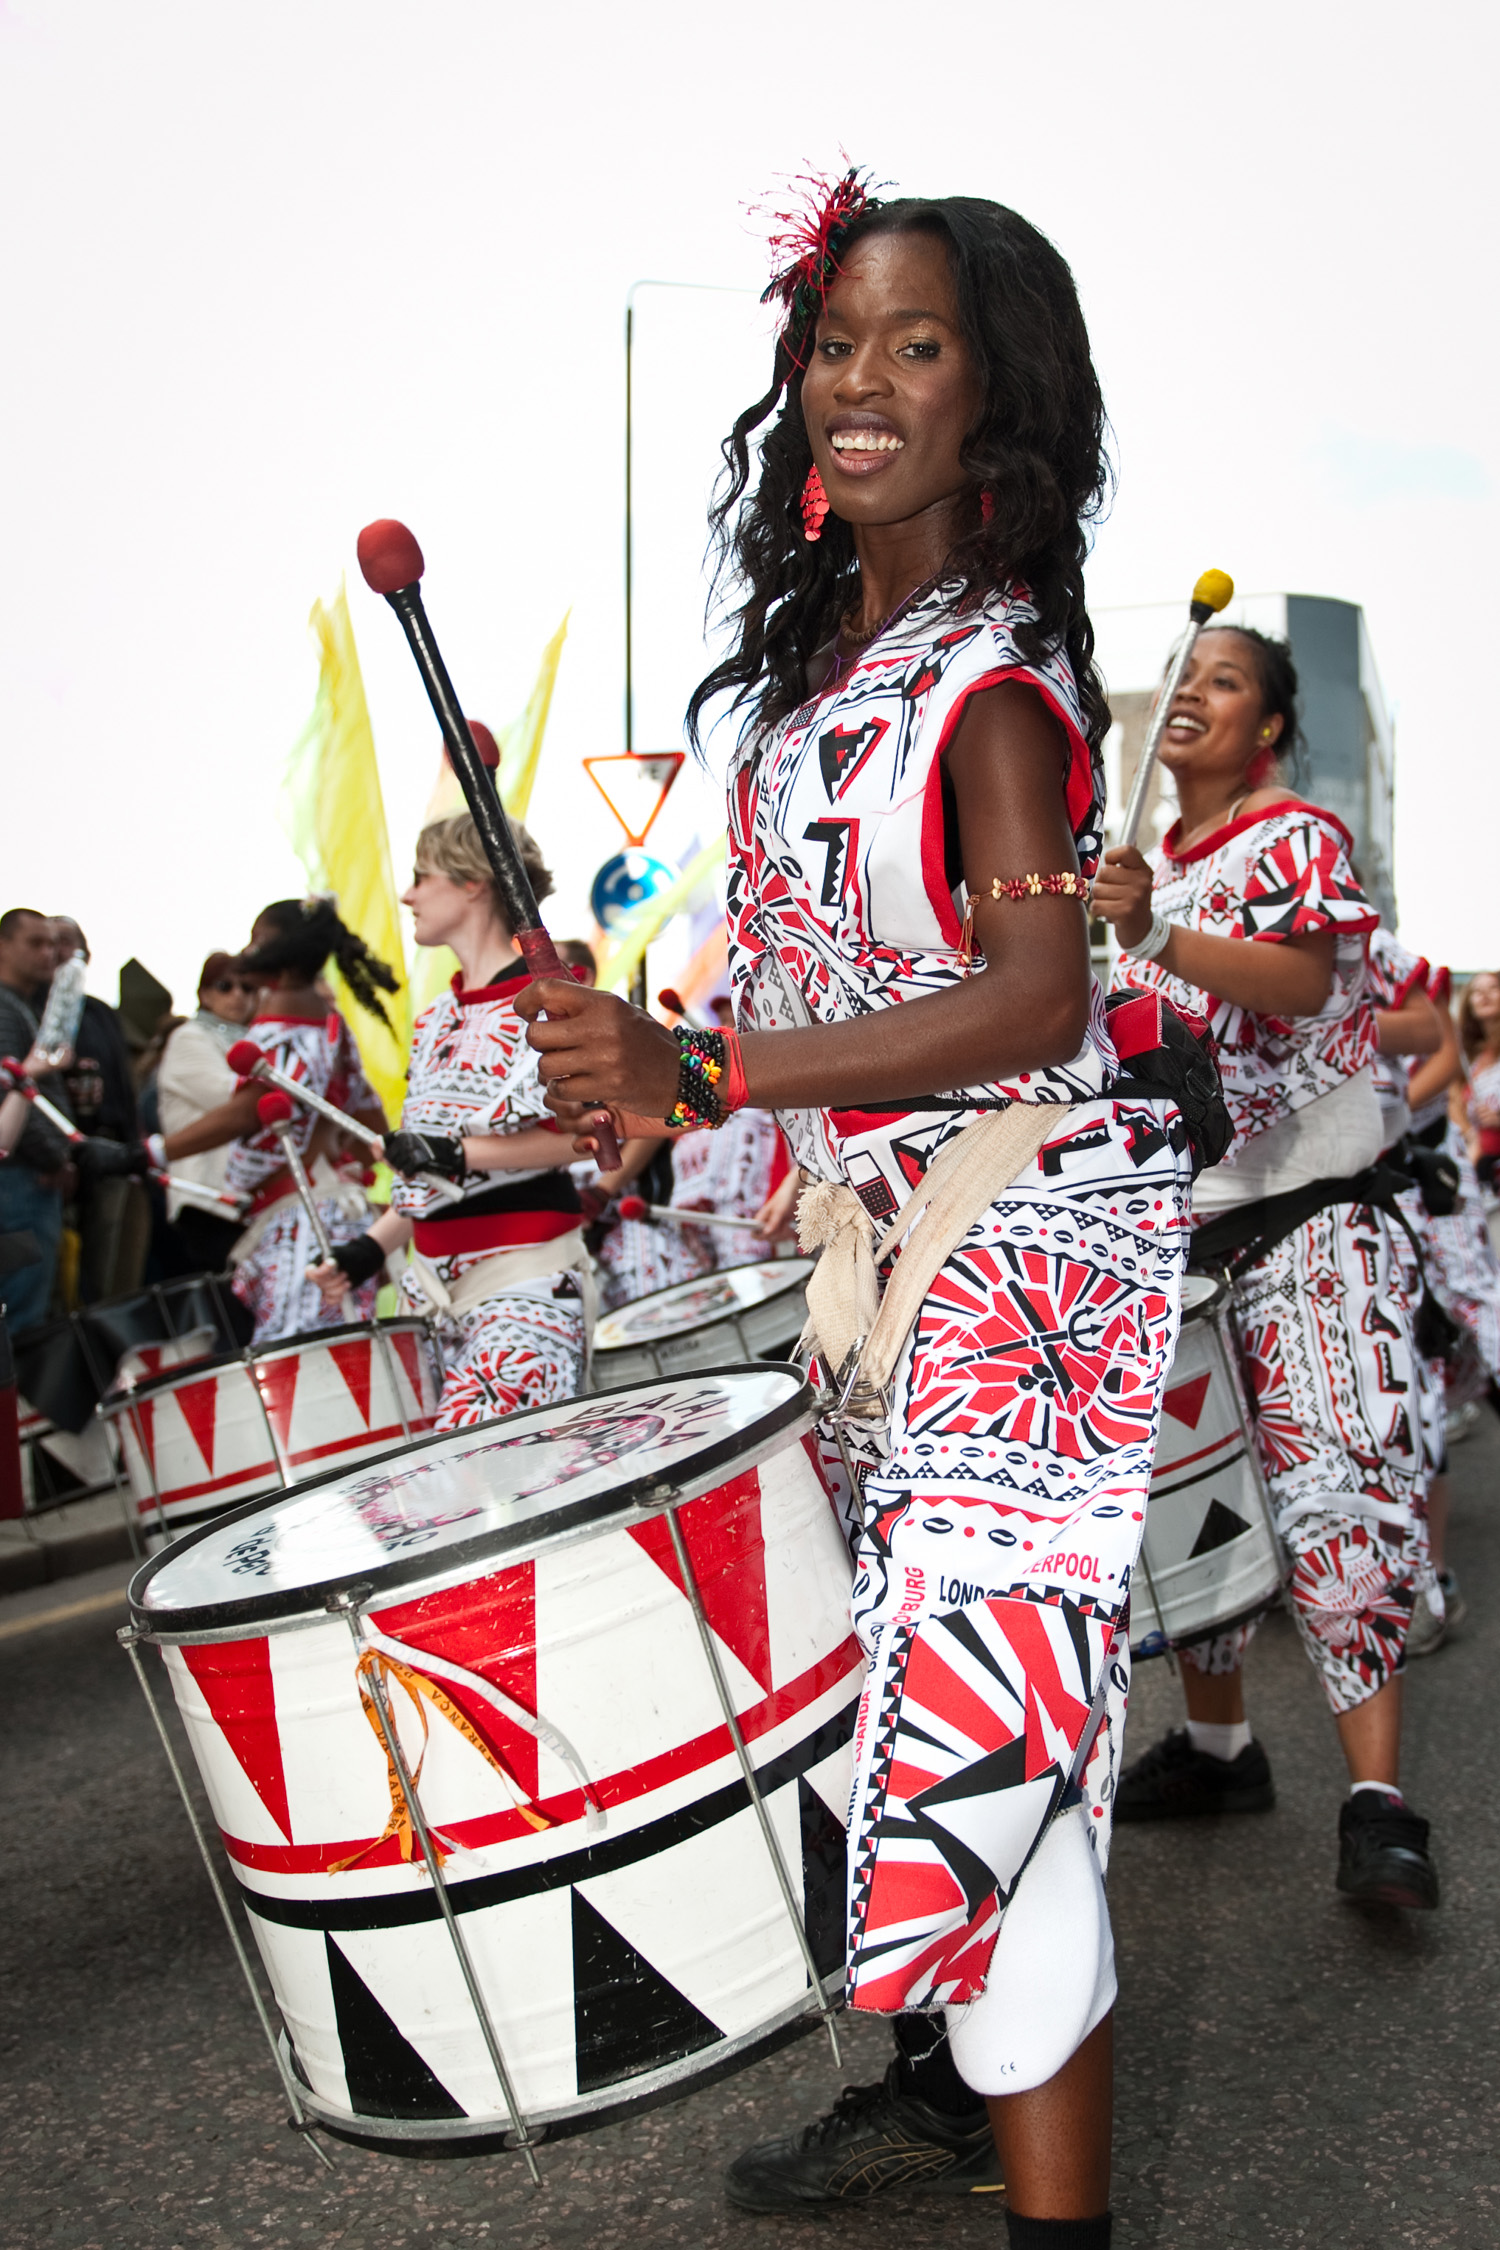 Carnival_the_drums_06